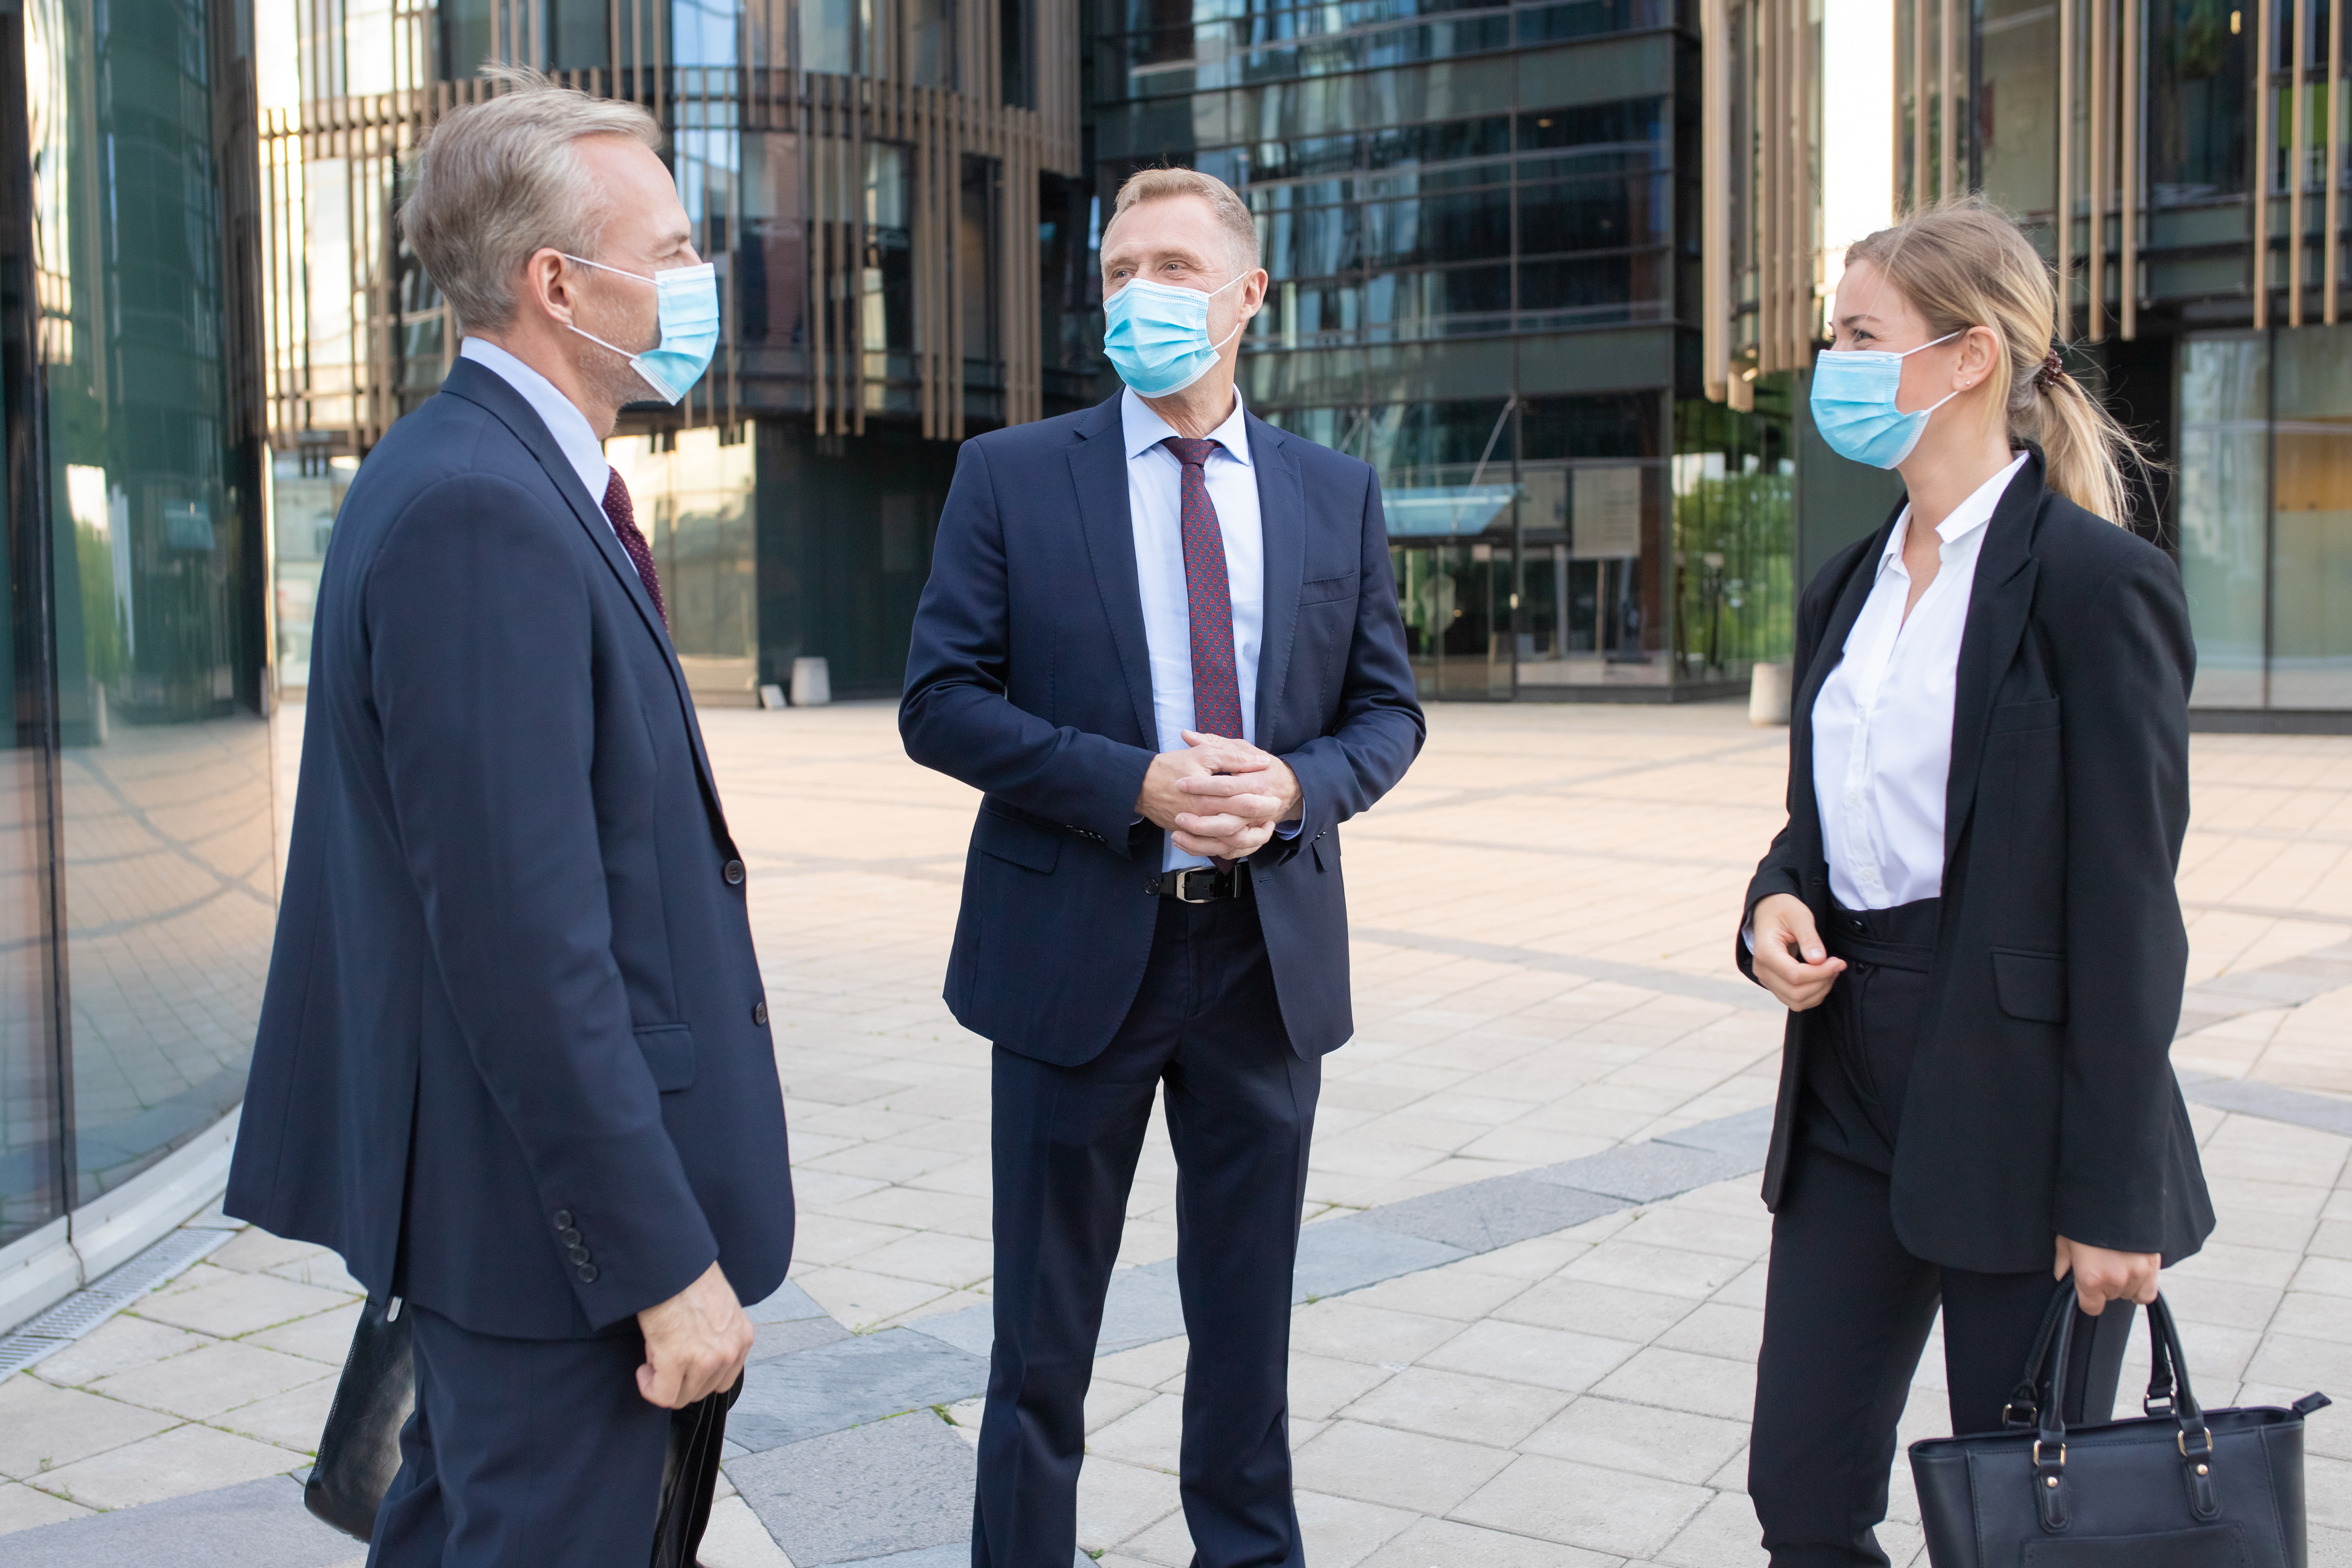 three-professional-business-colleagues-facial-masks-discussing-deal-outside-content-successful-managers-standing-street-talking-about-work-negotiation-protection-partnership-concept-1